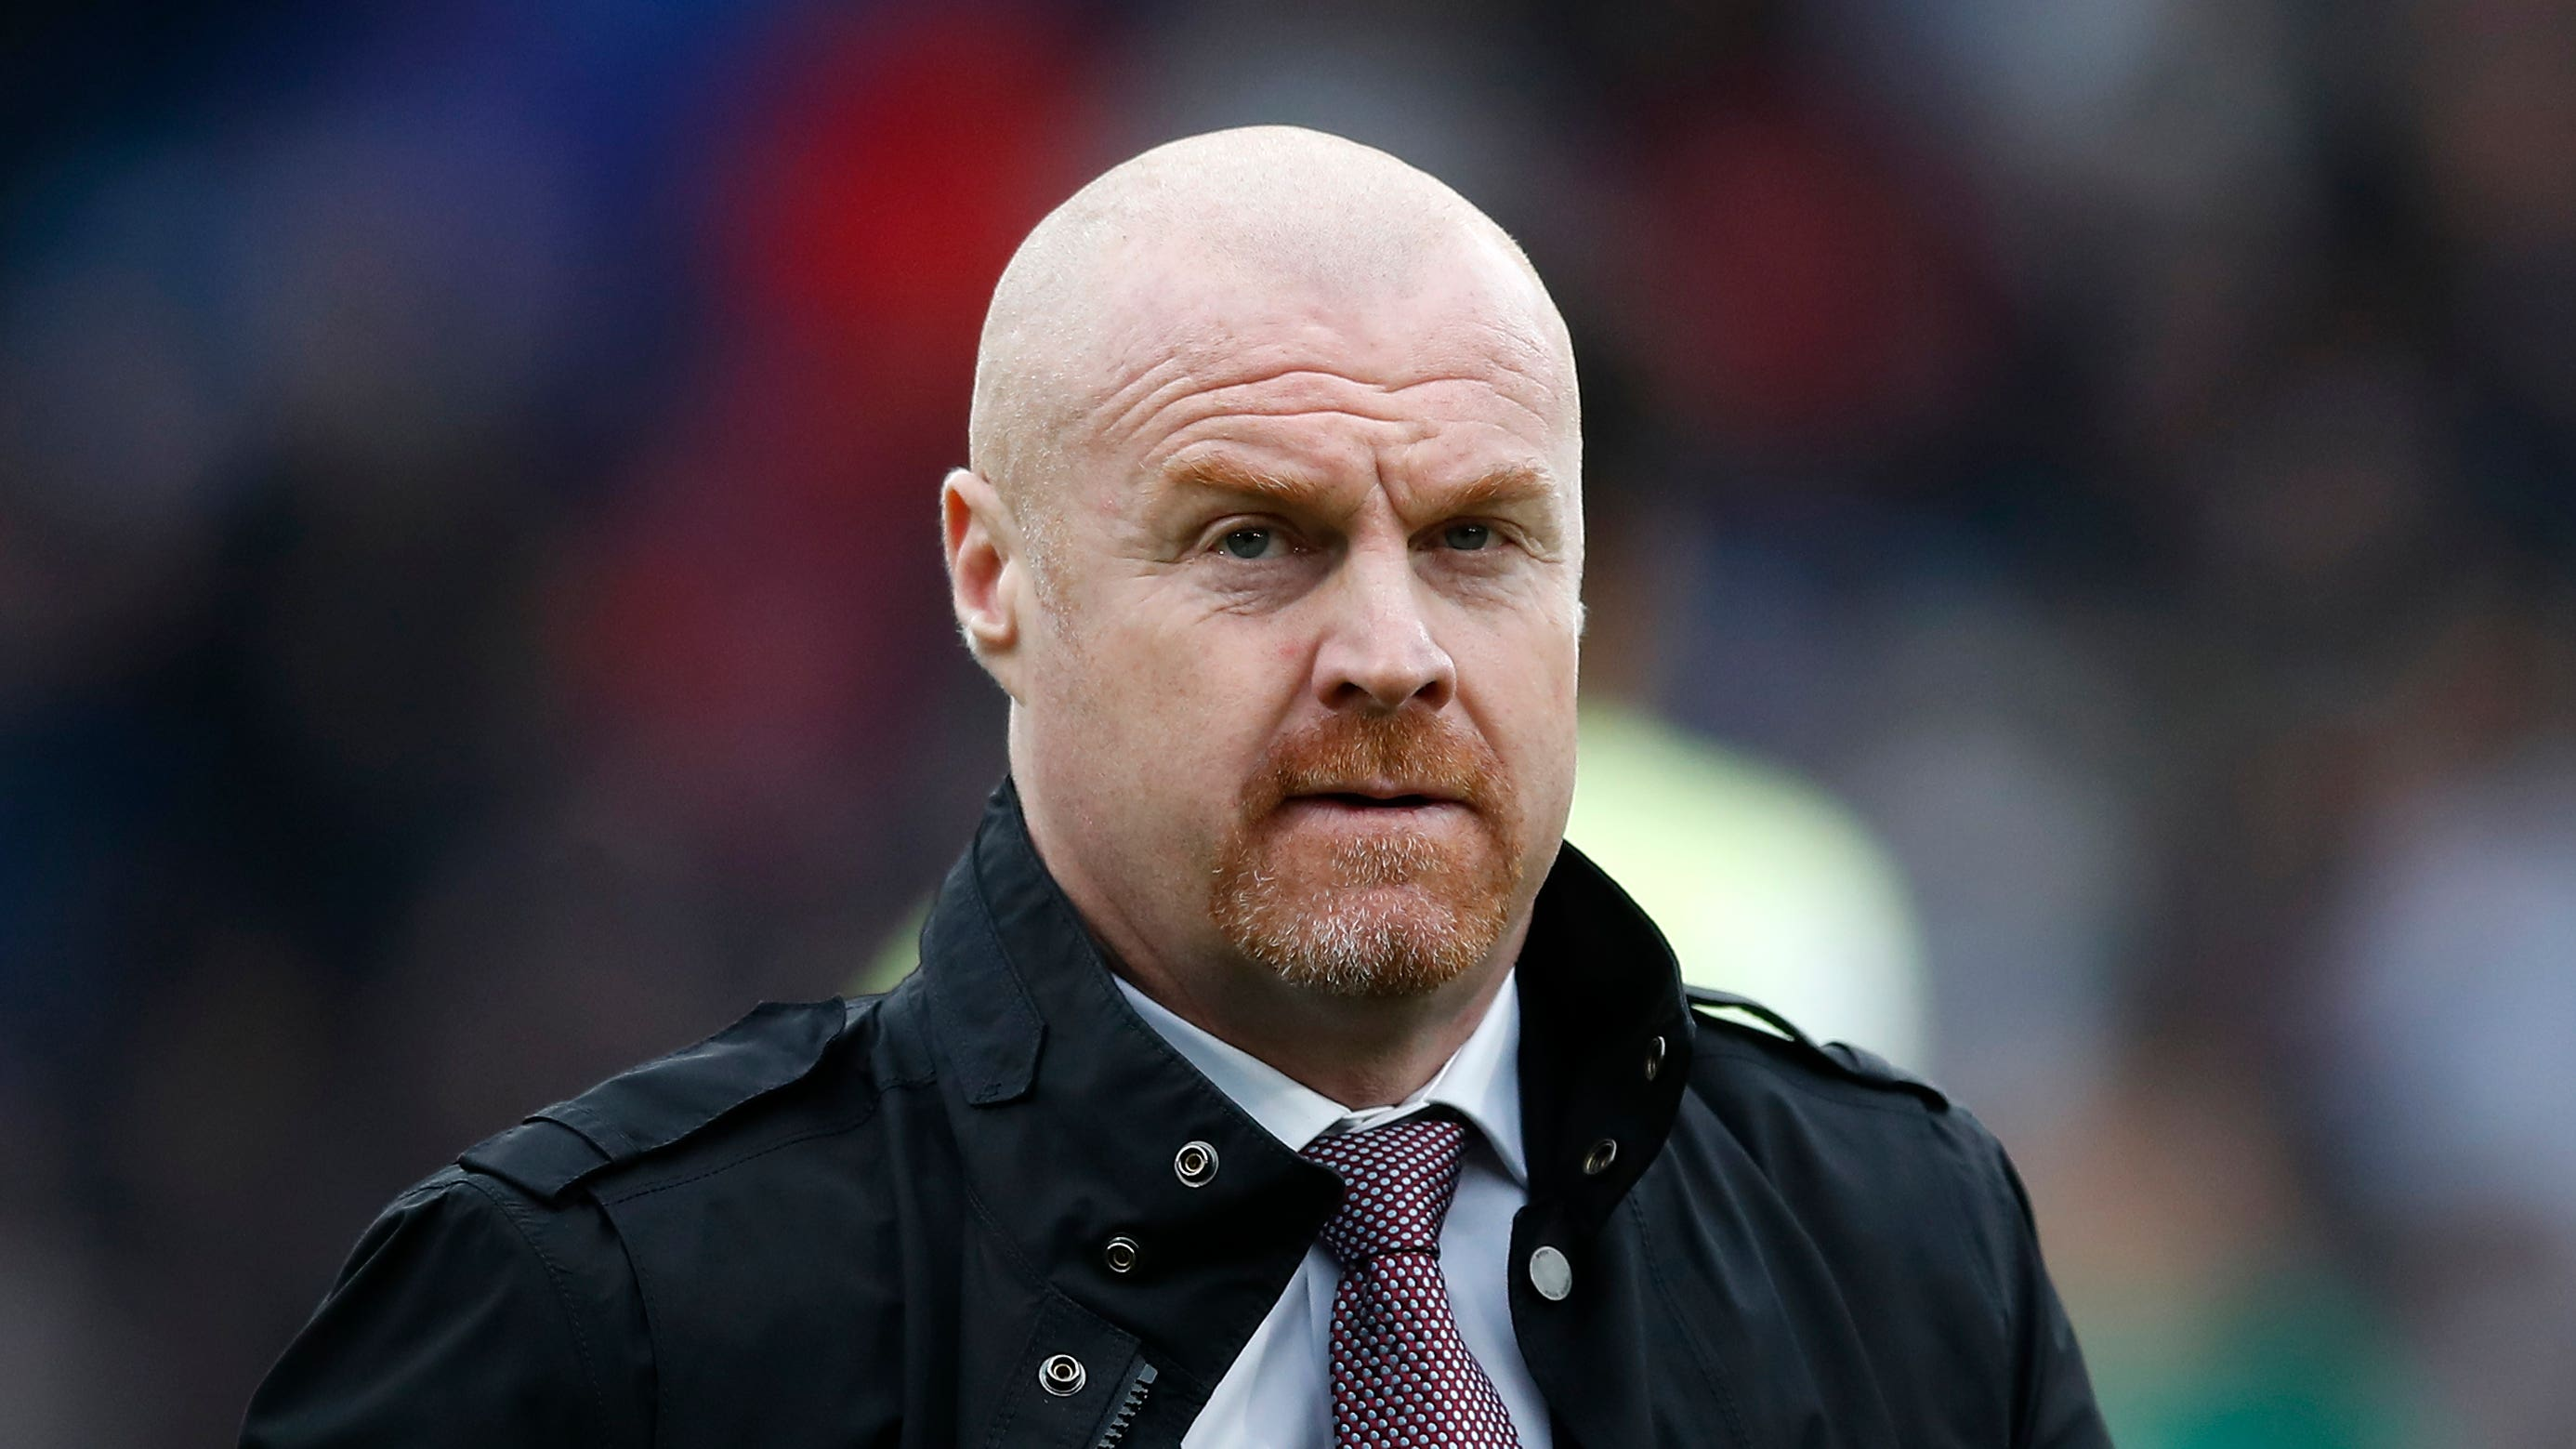 Sean Dyche says Burnley to strengthen anti-racism message in response to  banner | BT Sport